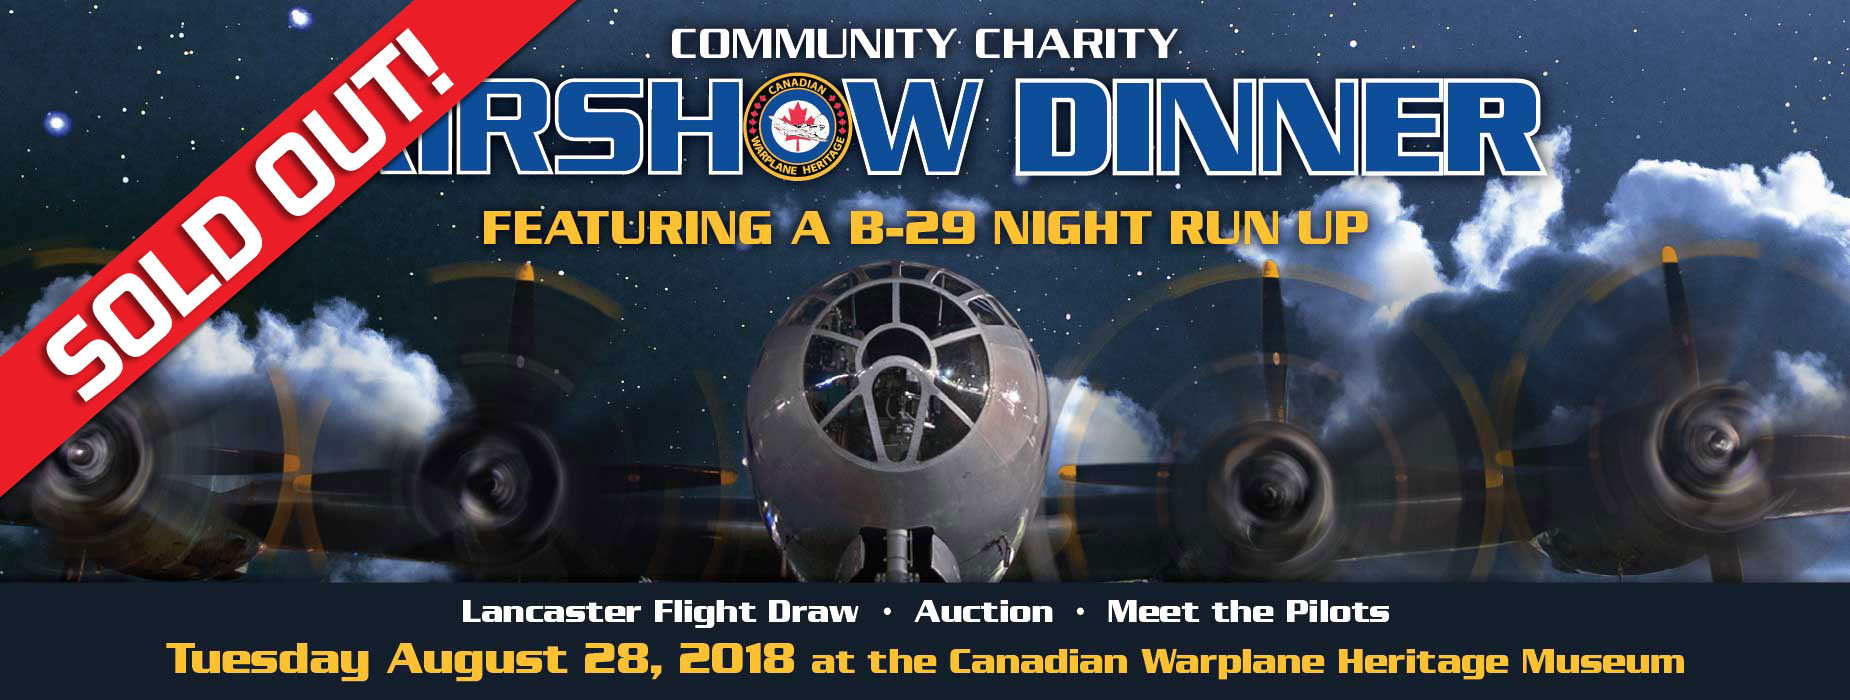 Poster for Airshow Dinner